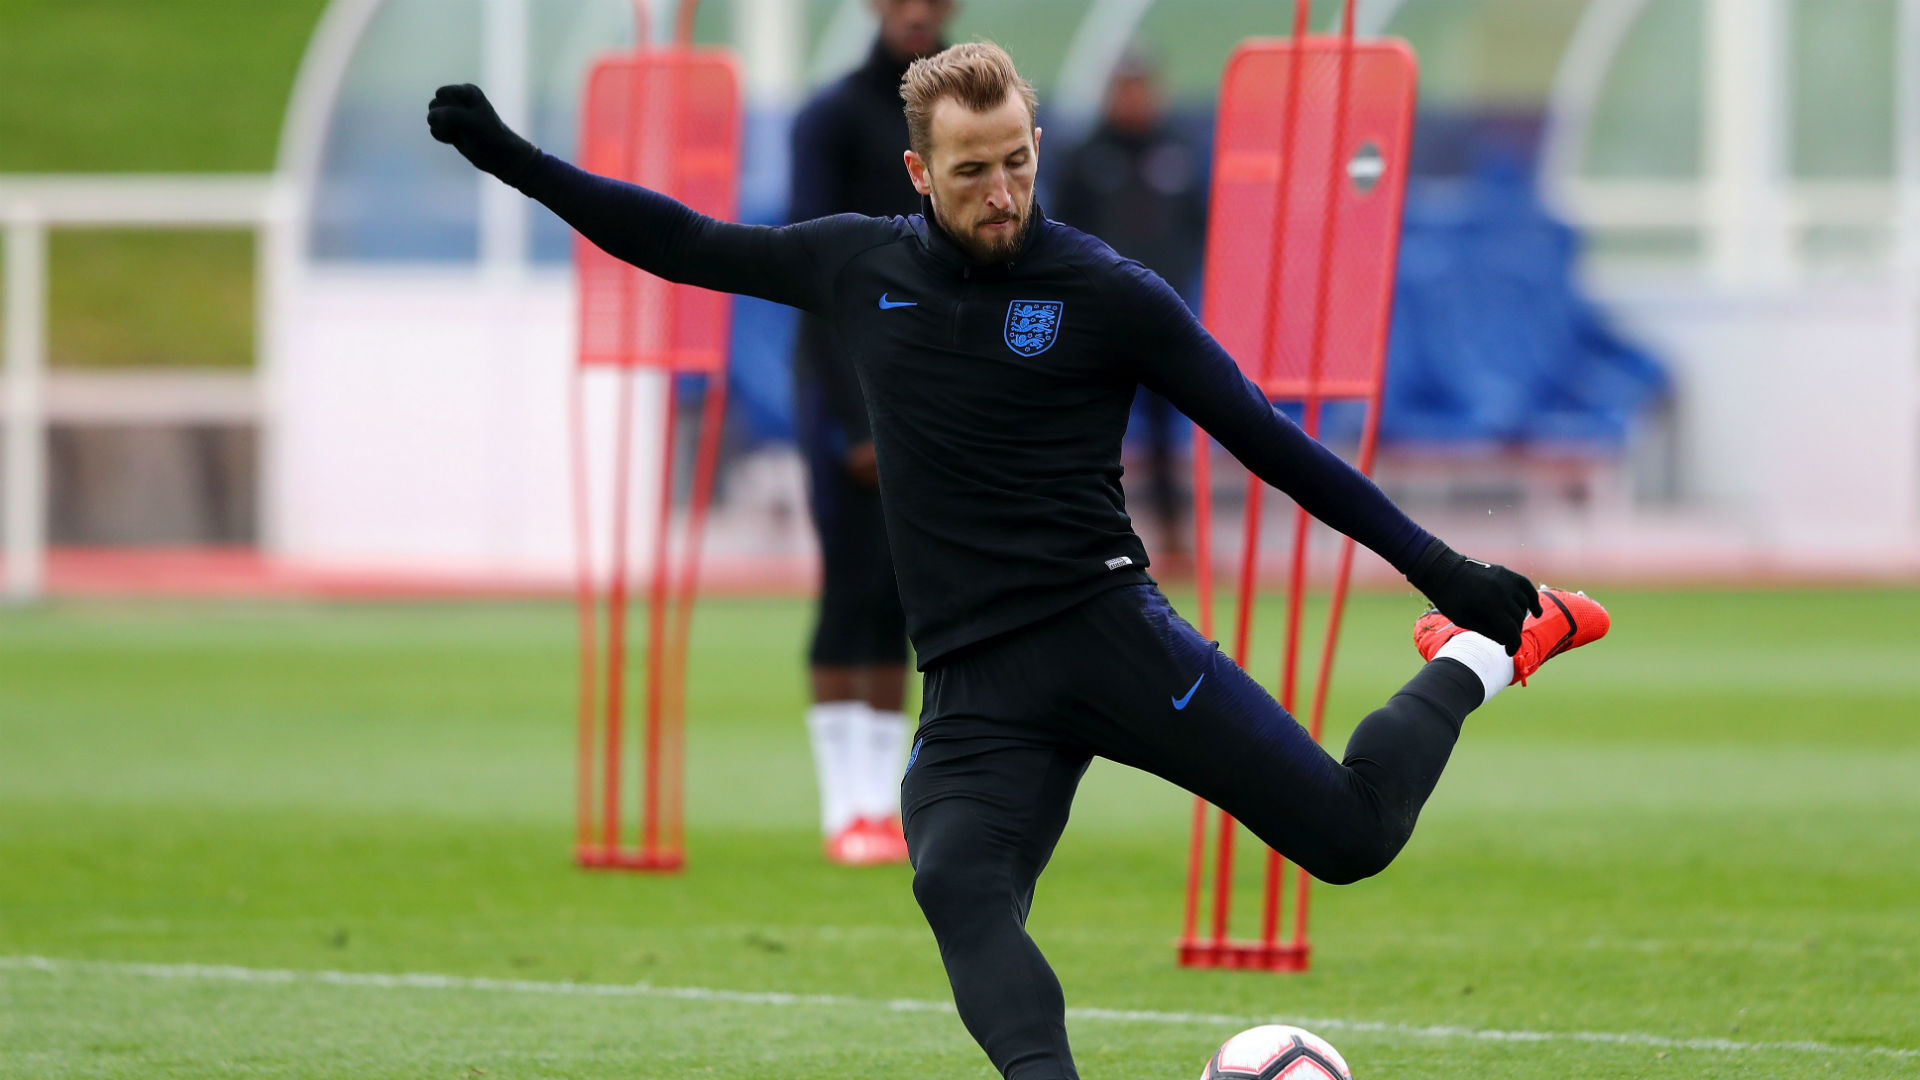 Harry Kane reiterates NFL goal in bid to join greatest sportsmen